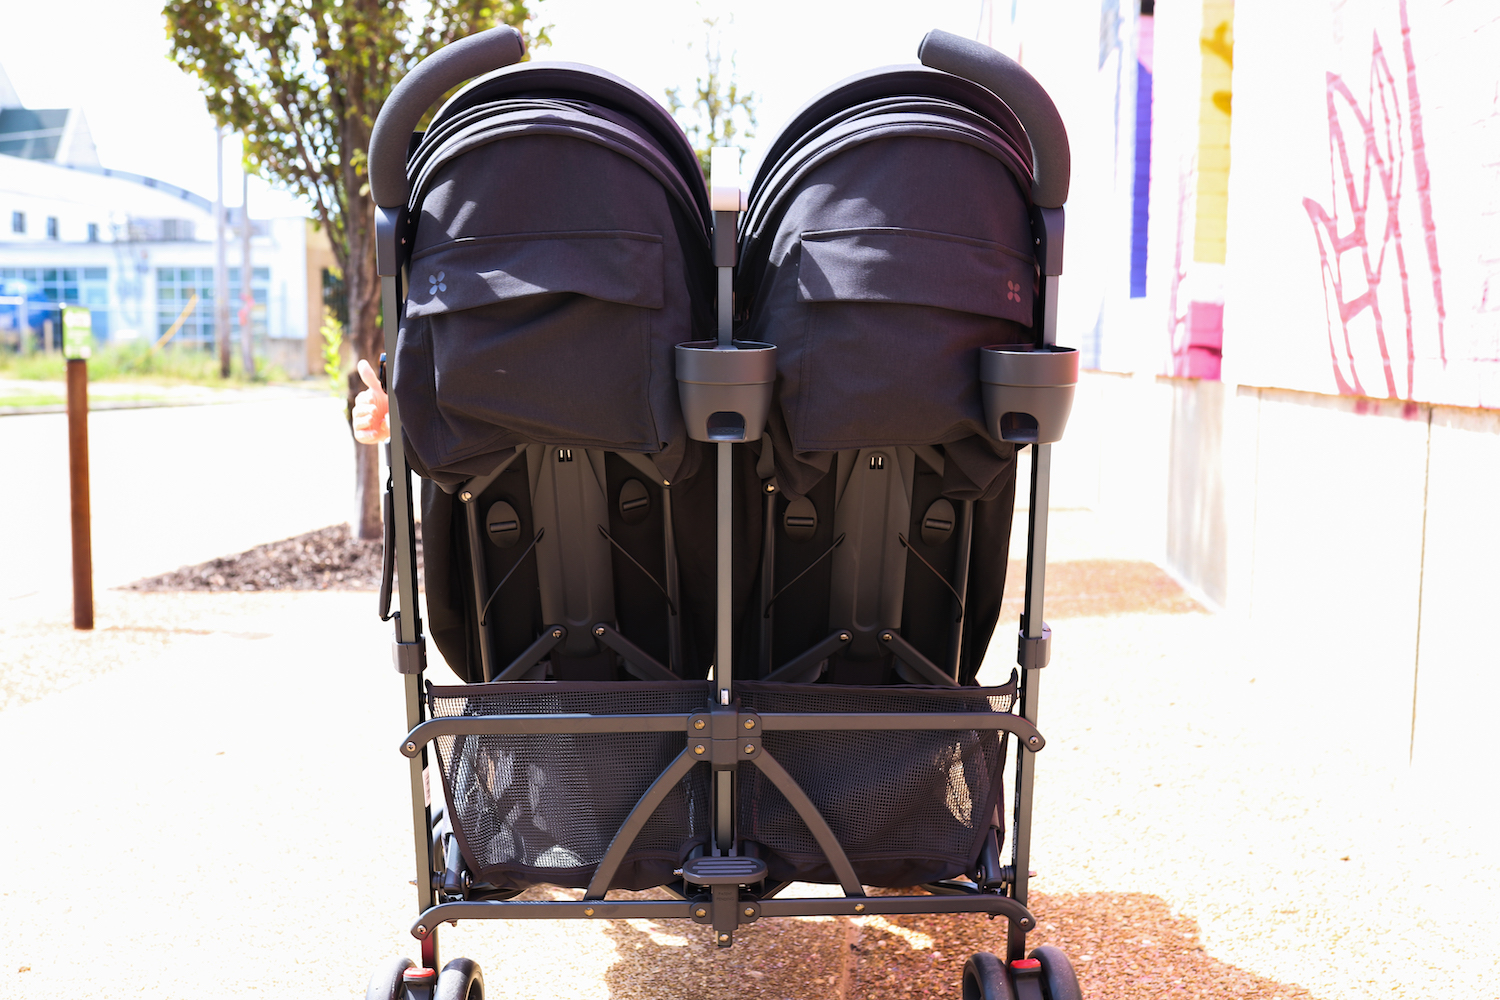 My honest review of the UPPAbaby G-LINK 2, a side-by-side double umbrella stroller! From Liz of lizrotz.com